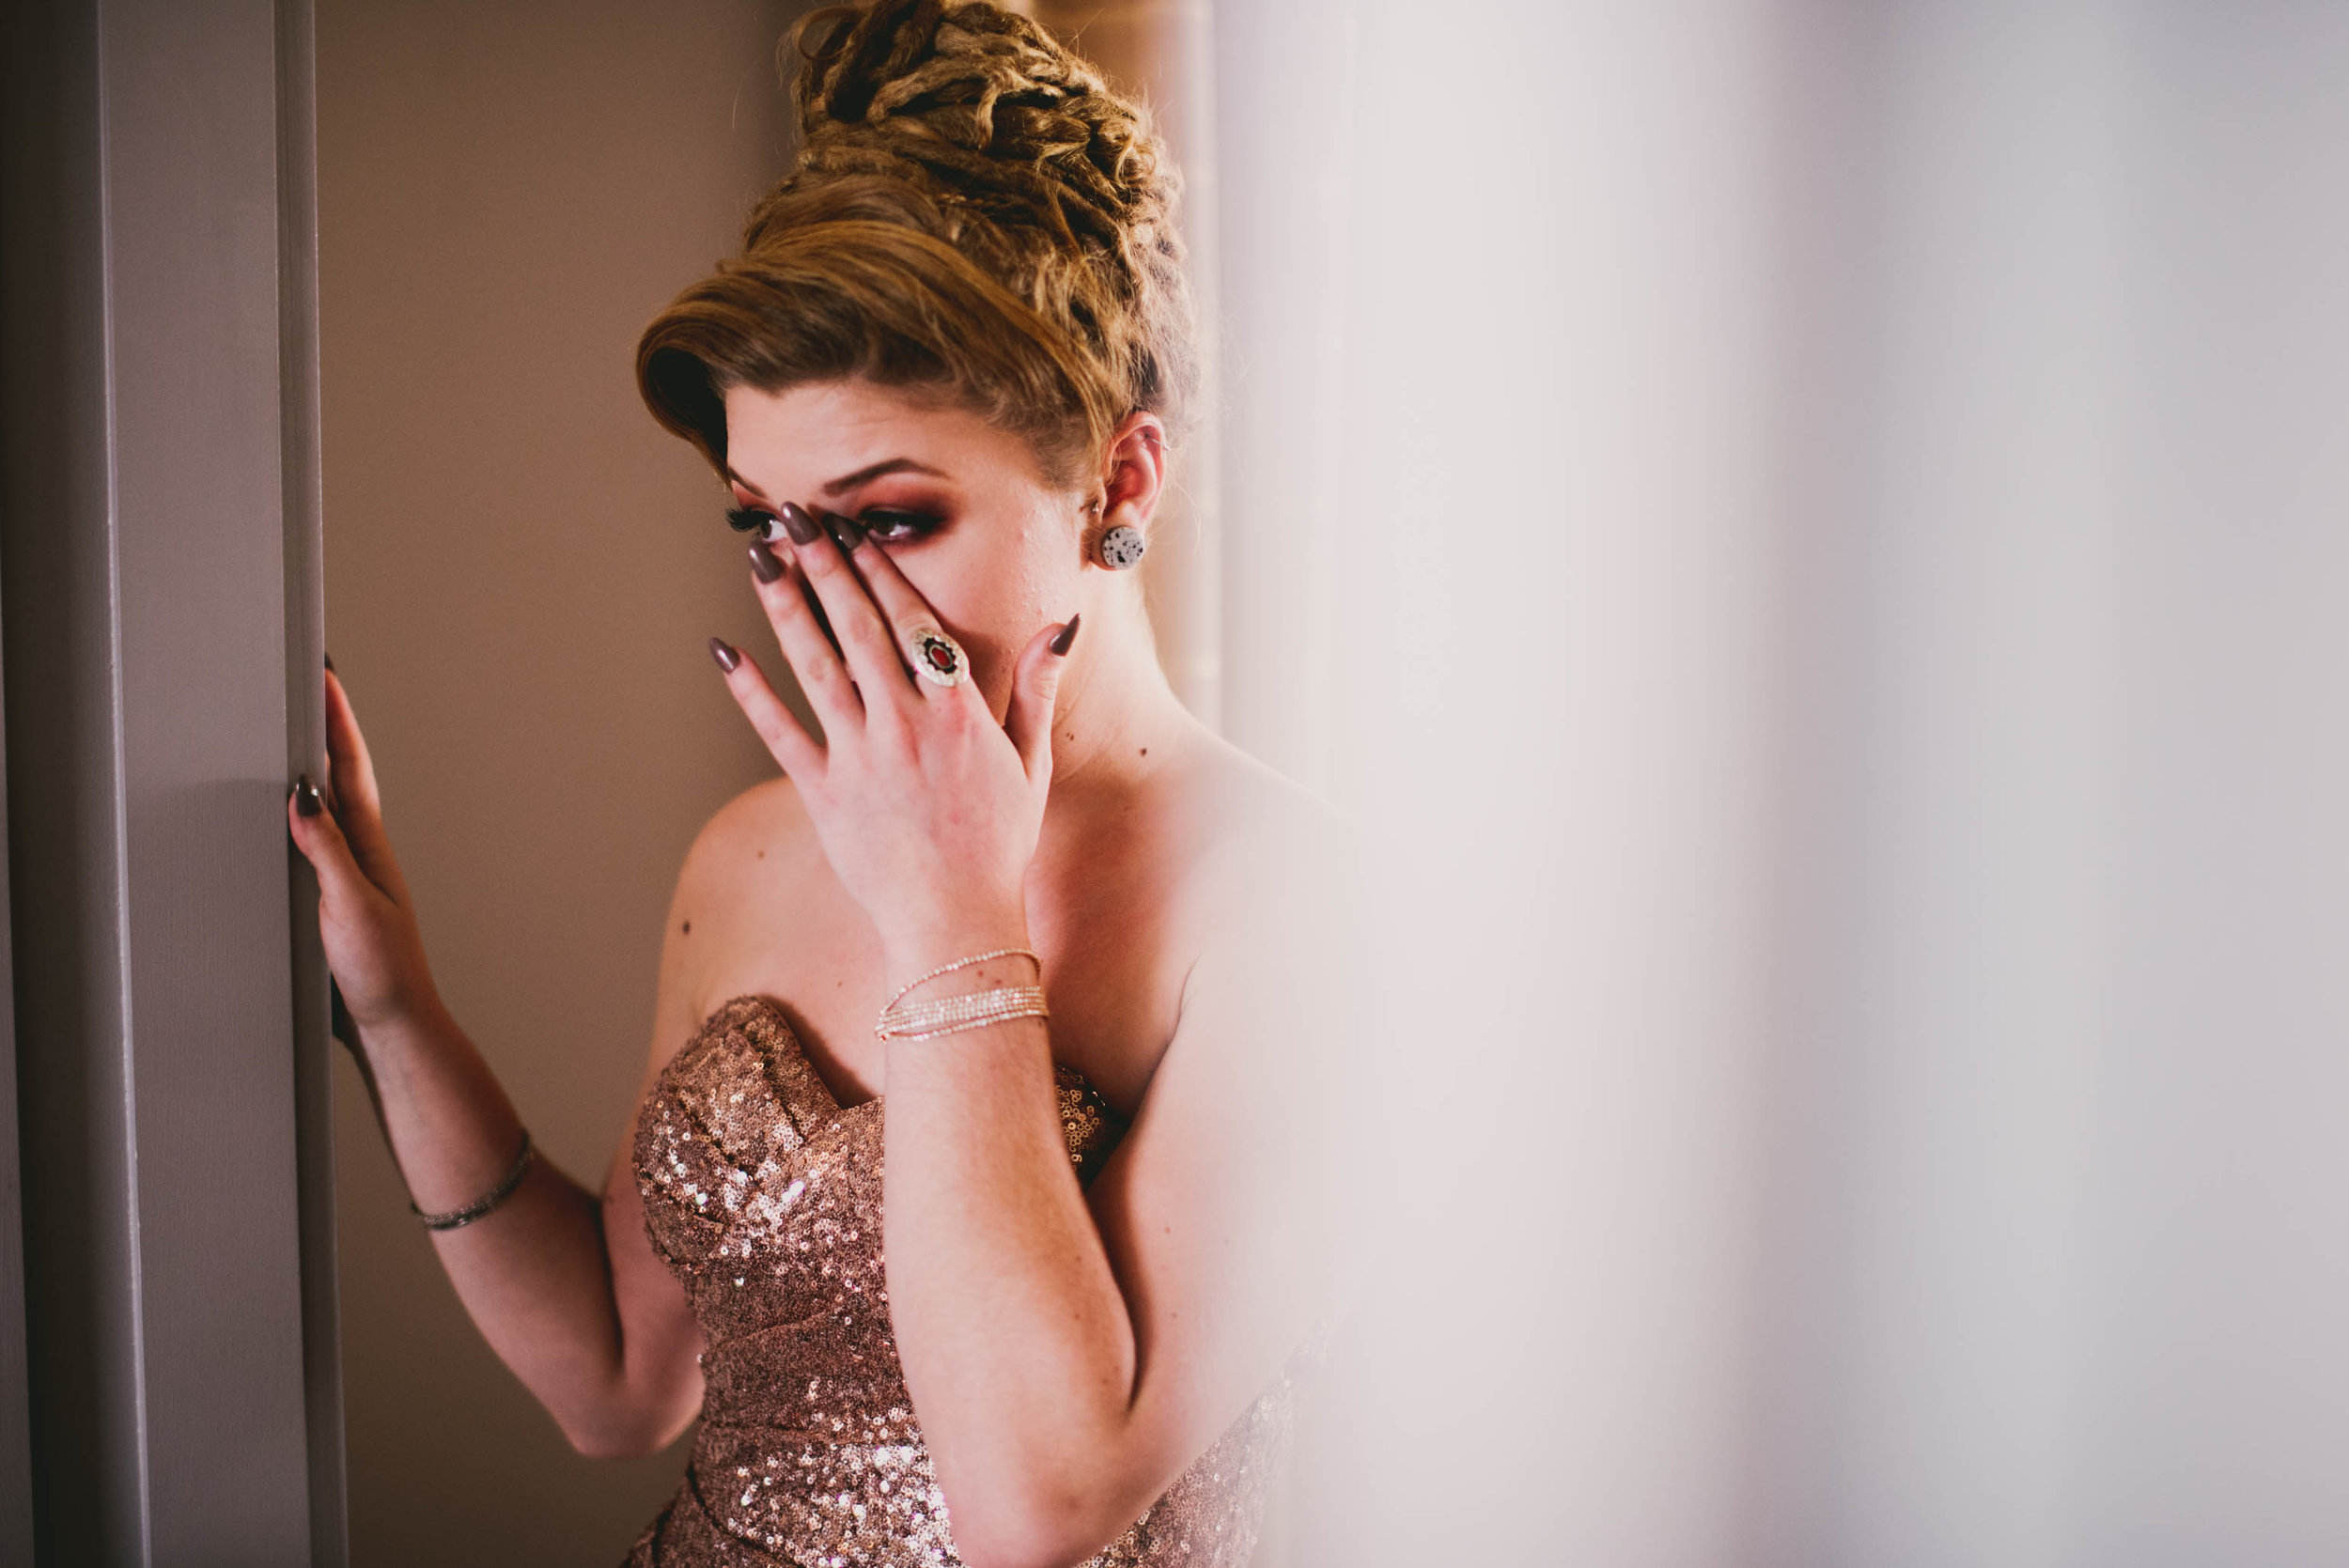 21c-hotel-durham-offbeat-wedding-bridesmaid-crying.jpg